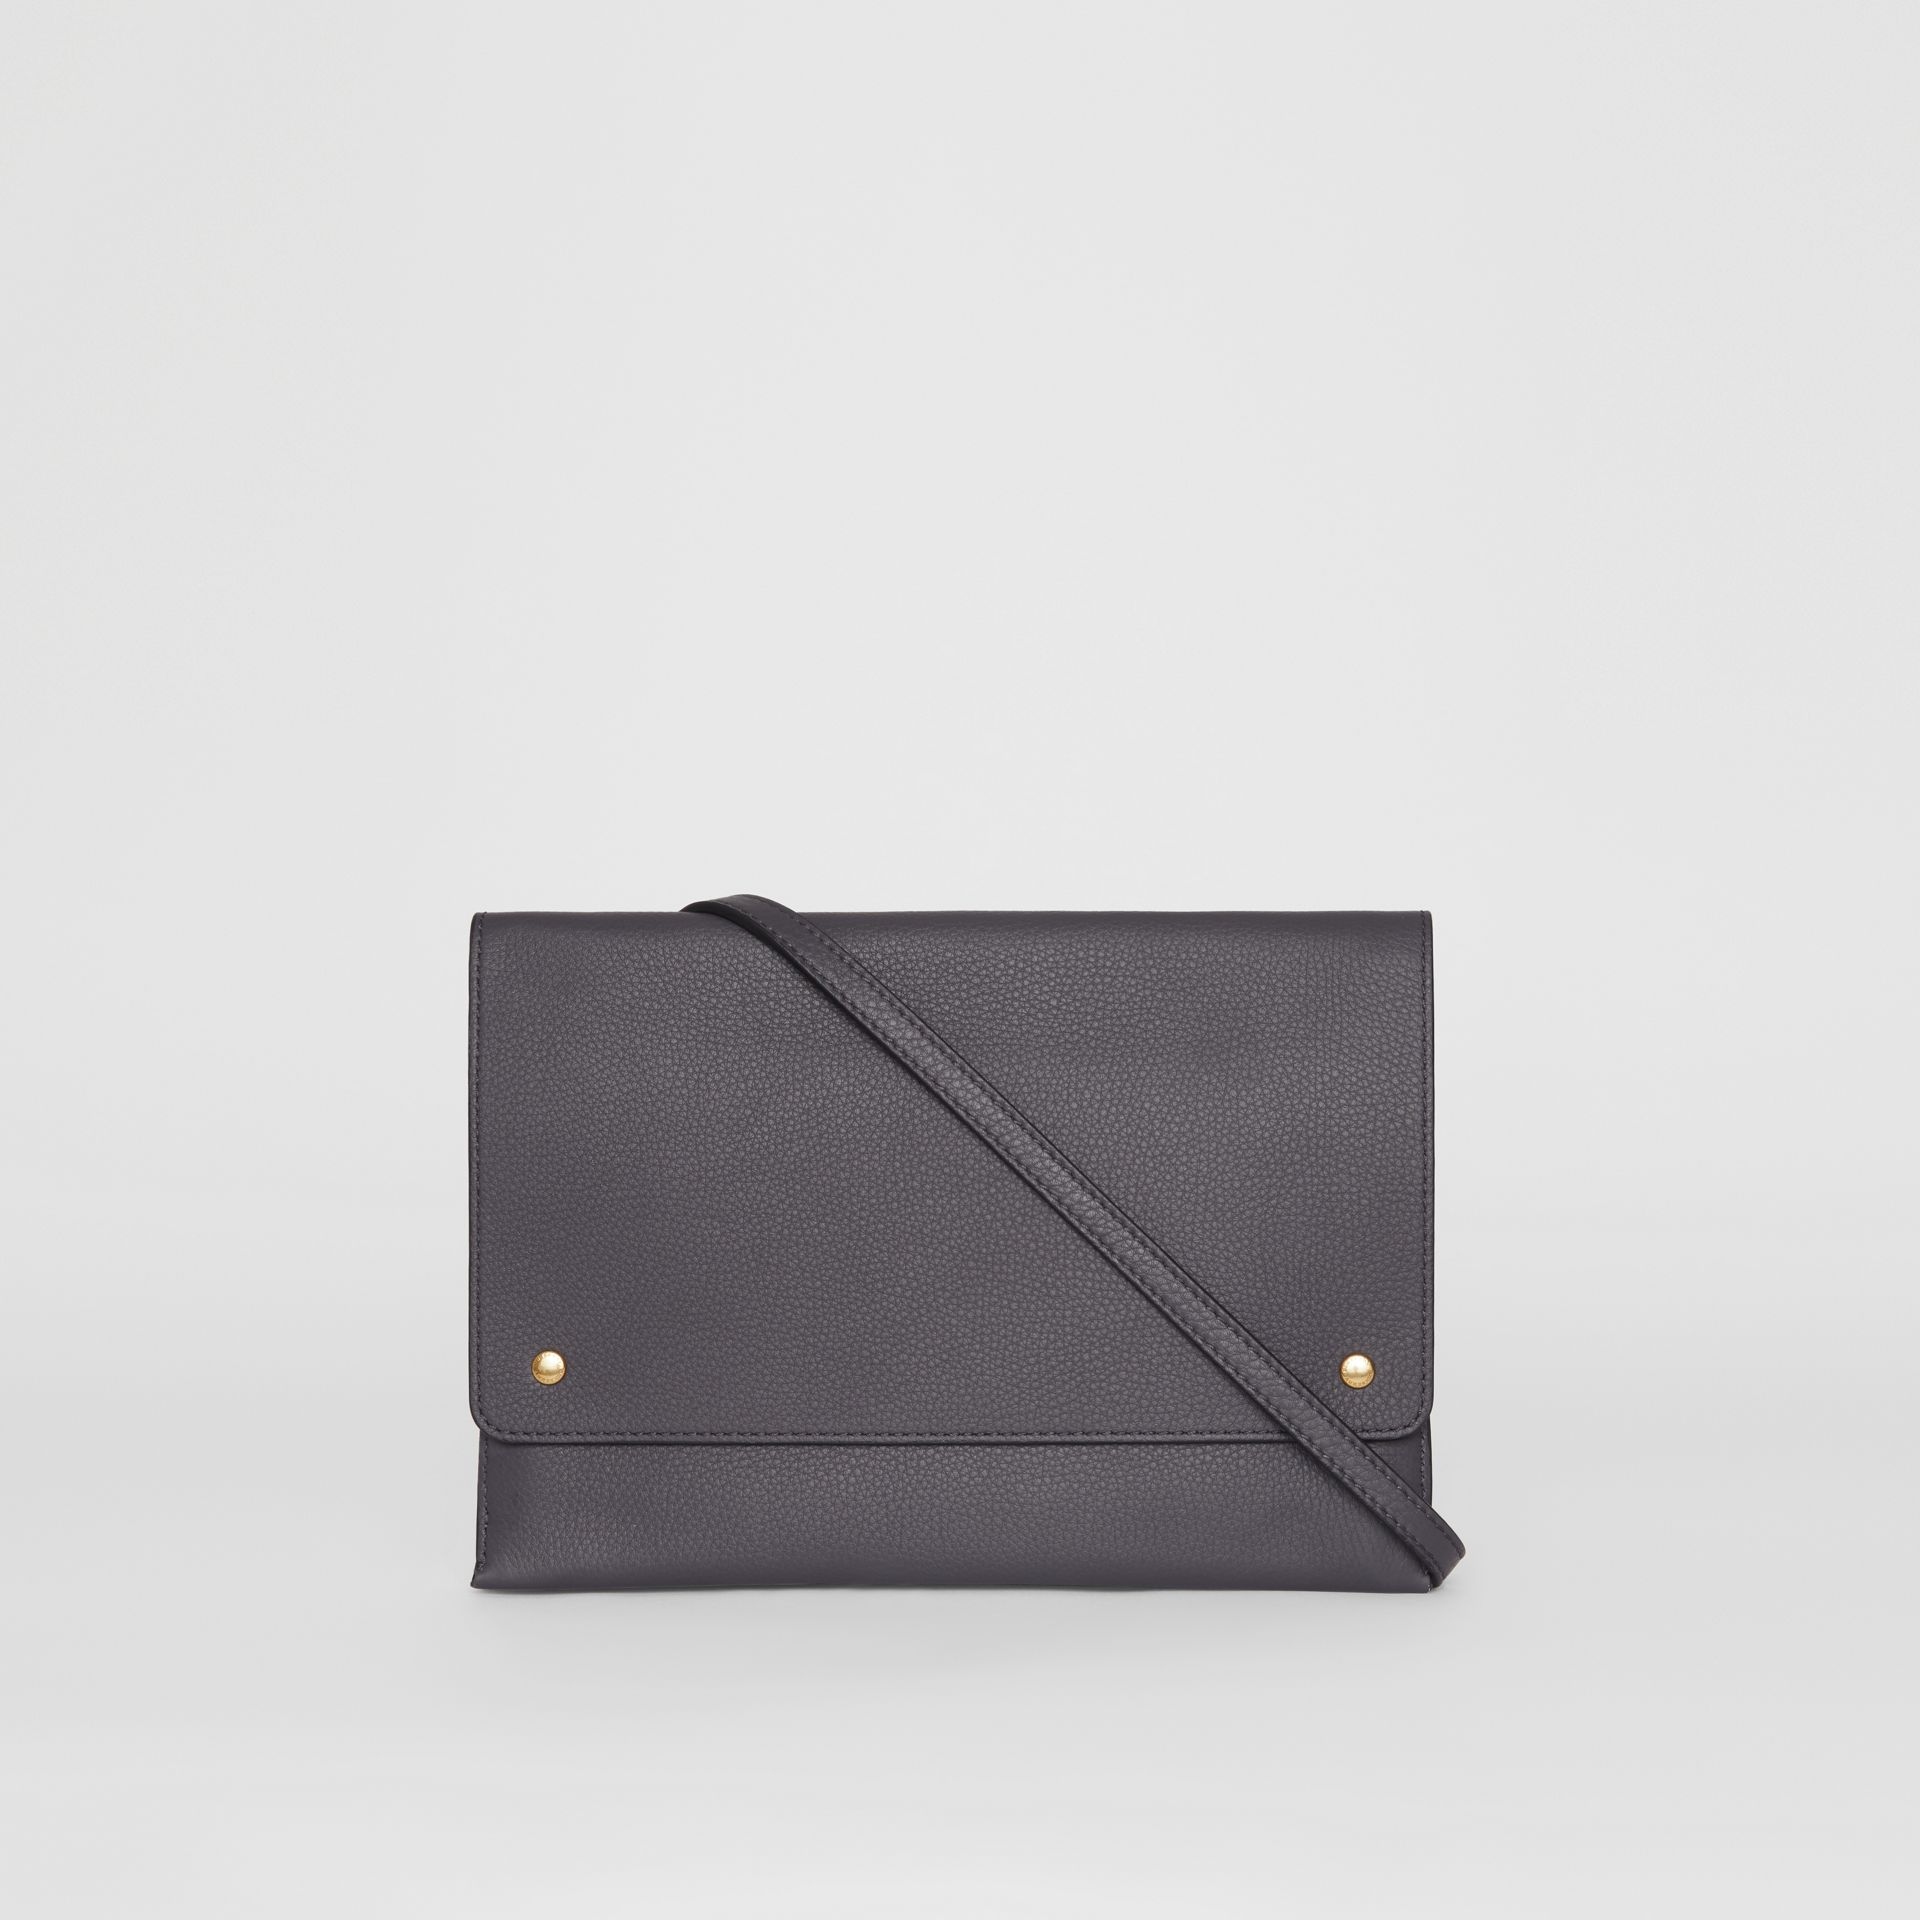 Leather Envelope Crossbody Bag in Charcoal Grey - Women | Burberry - gallery image 5